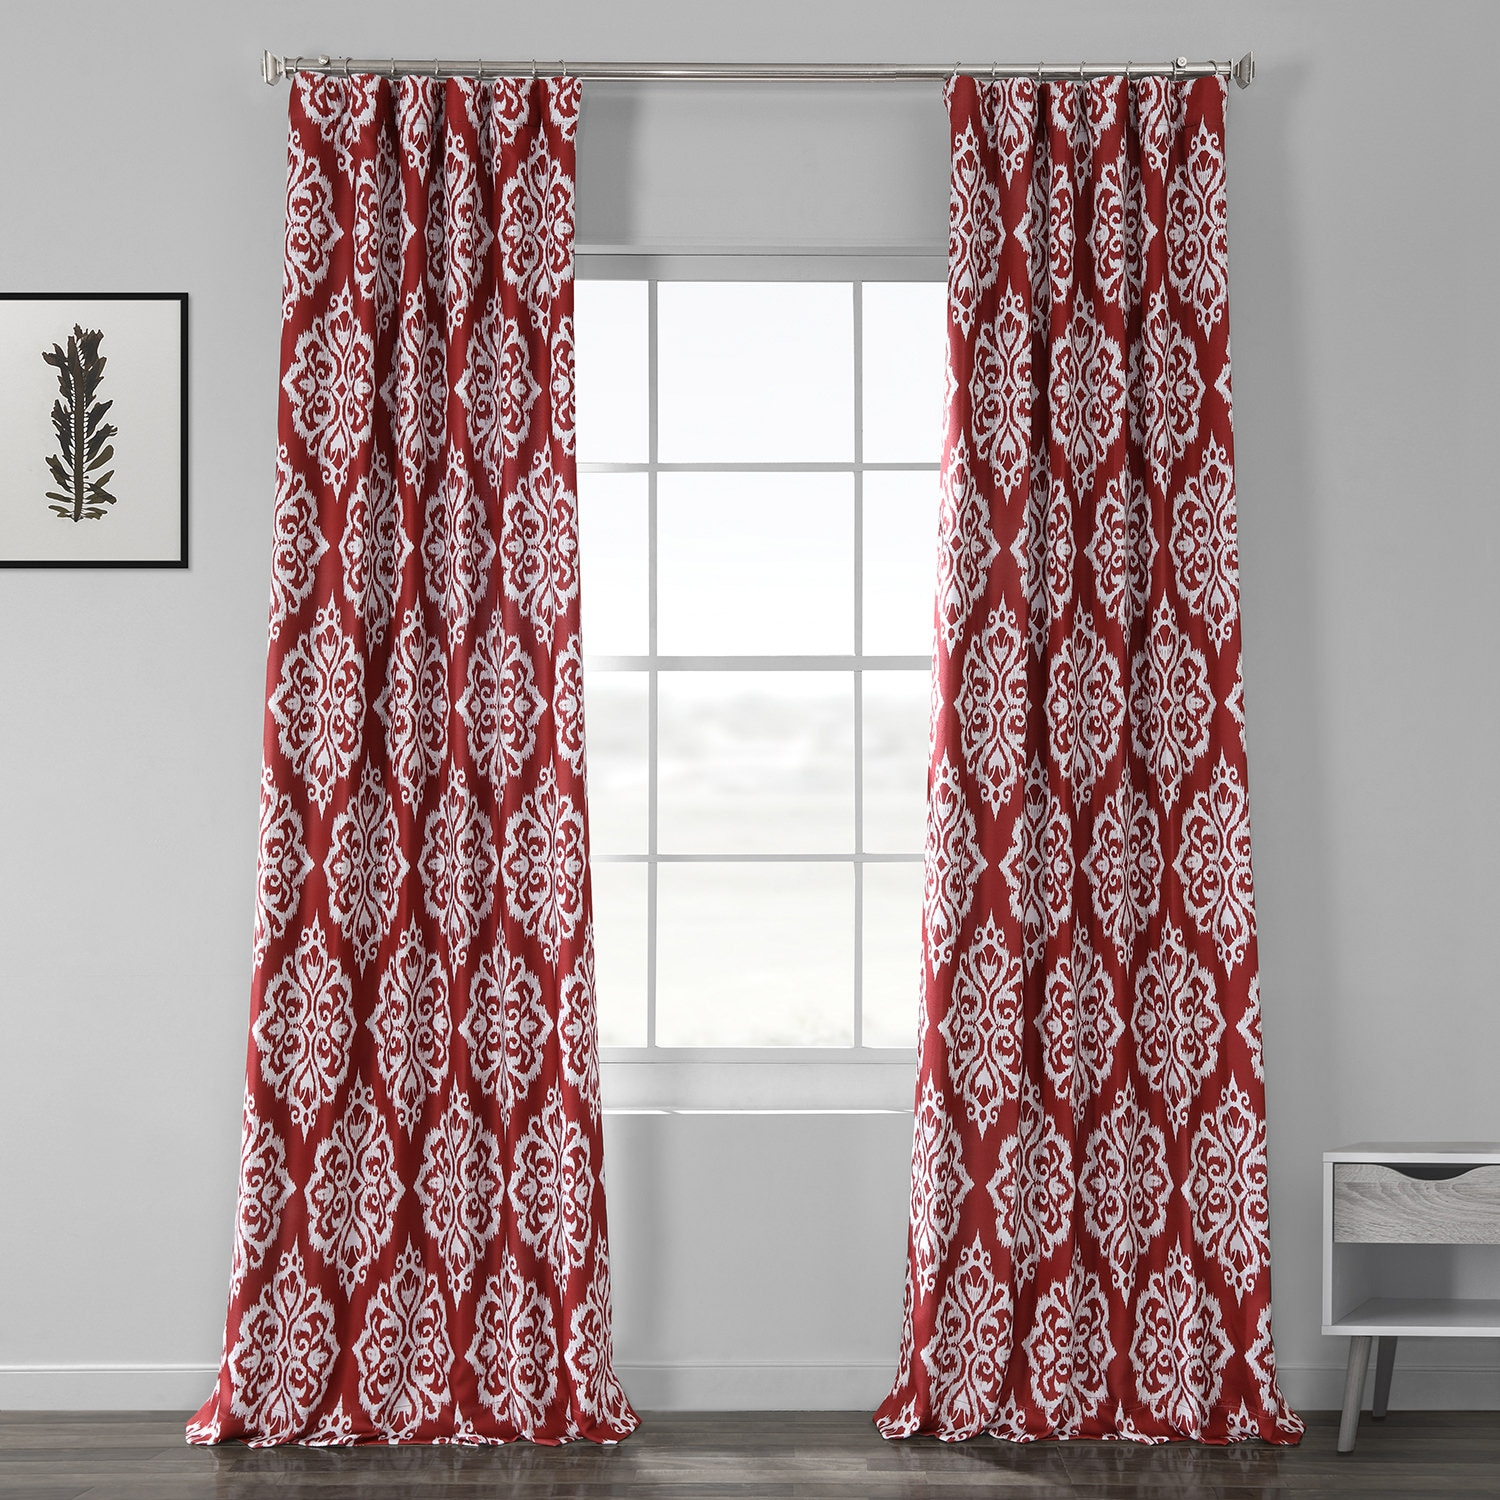 Cameo Red Printed Linen Textured Blackout Curtain